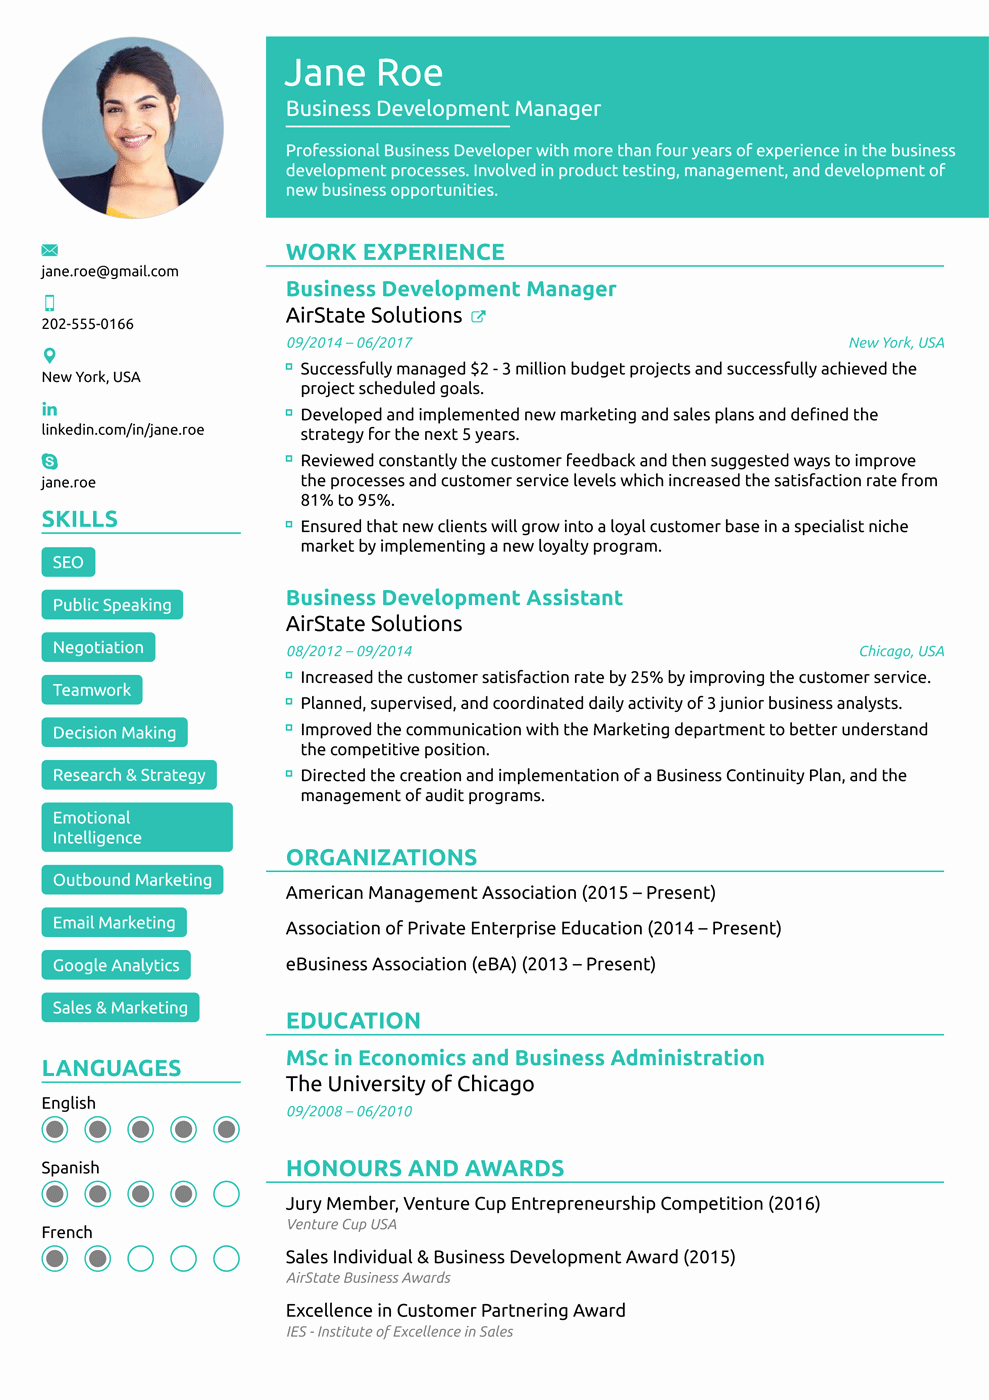 Free Functional Resume Template Inspirational 8 Best Line Resume Templates Of 2018 [download & Customize]